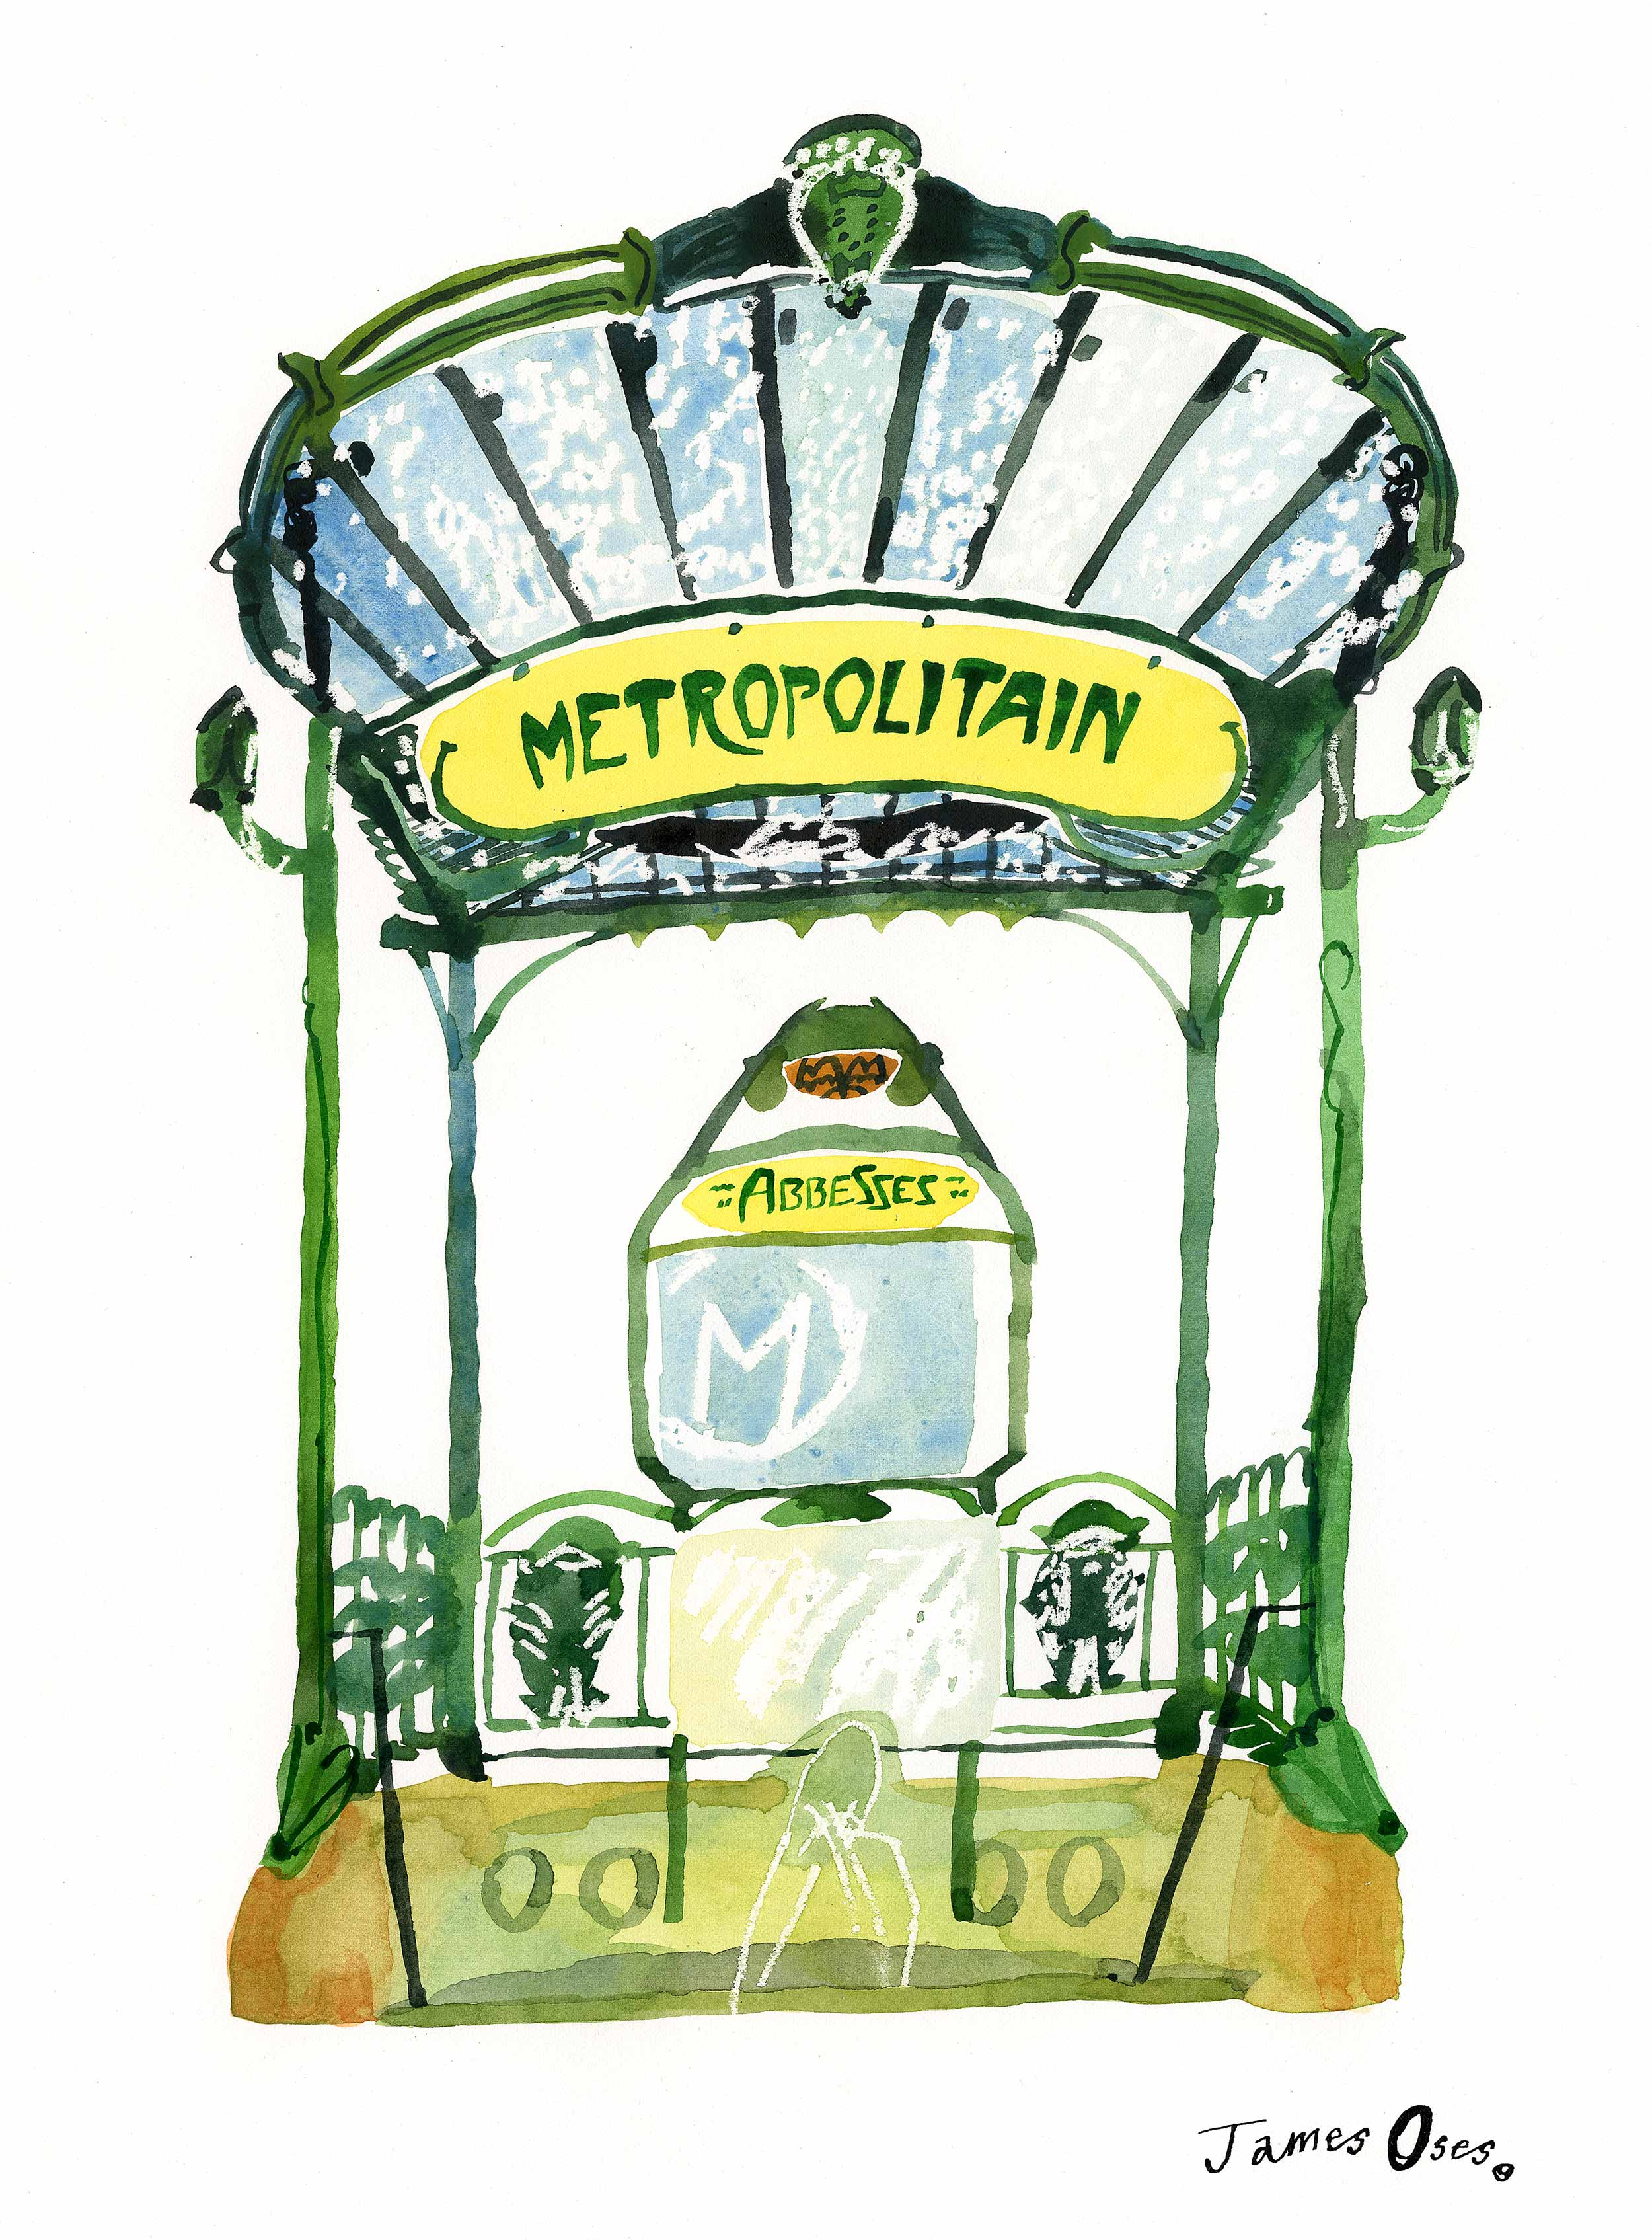 Abbesses métro station, Paris by James Oses